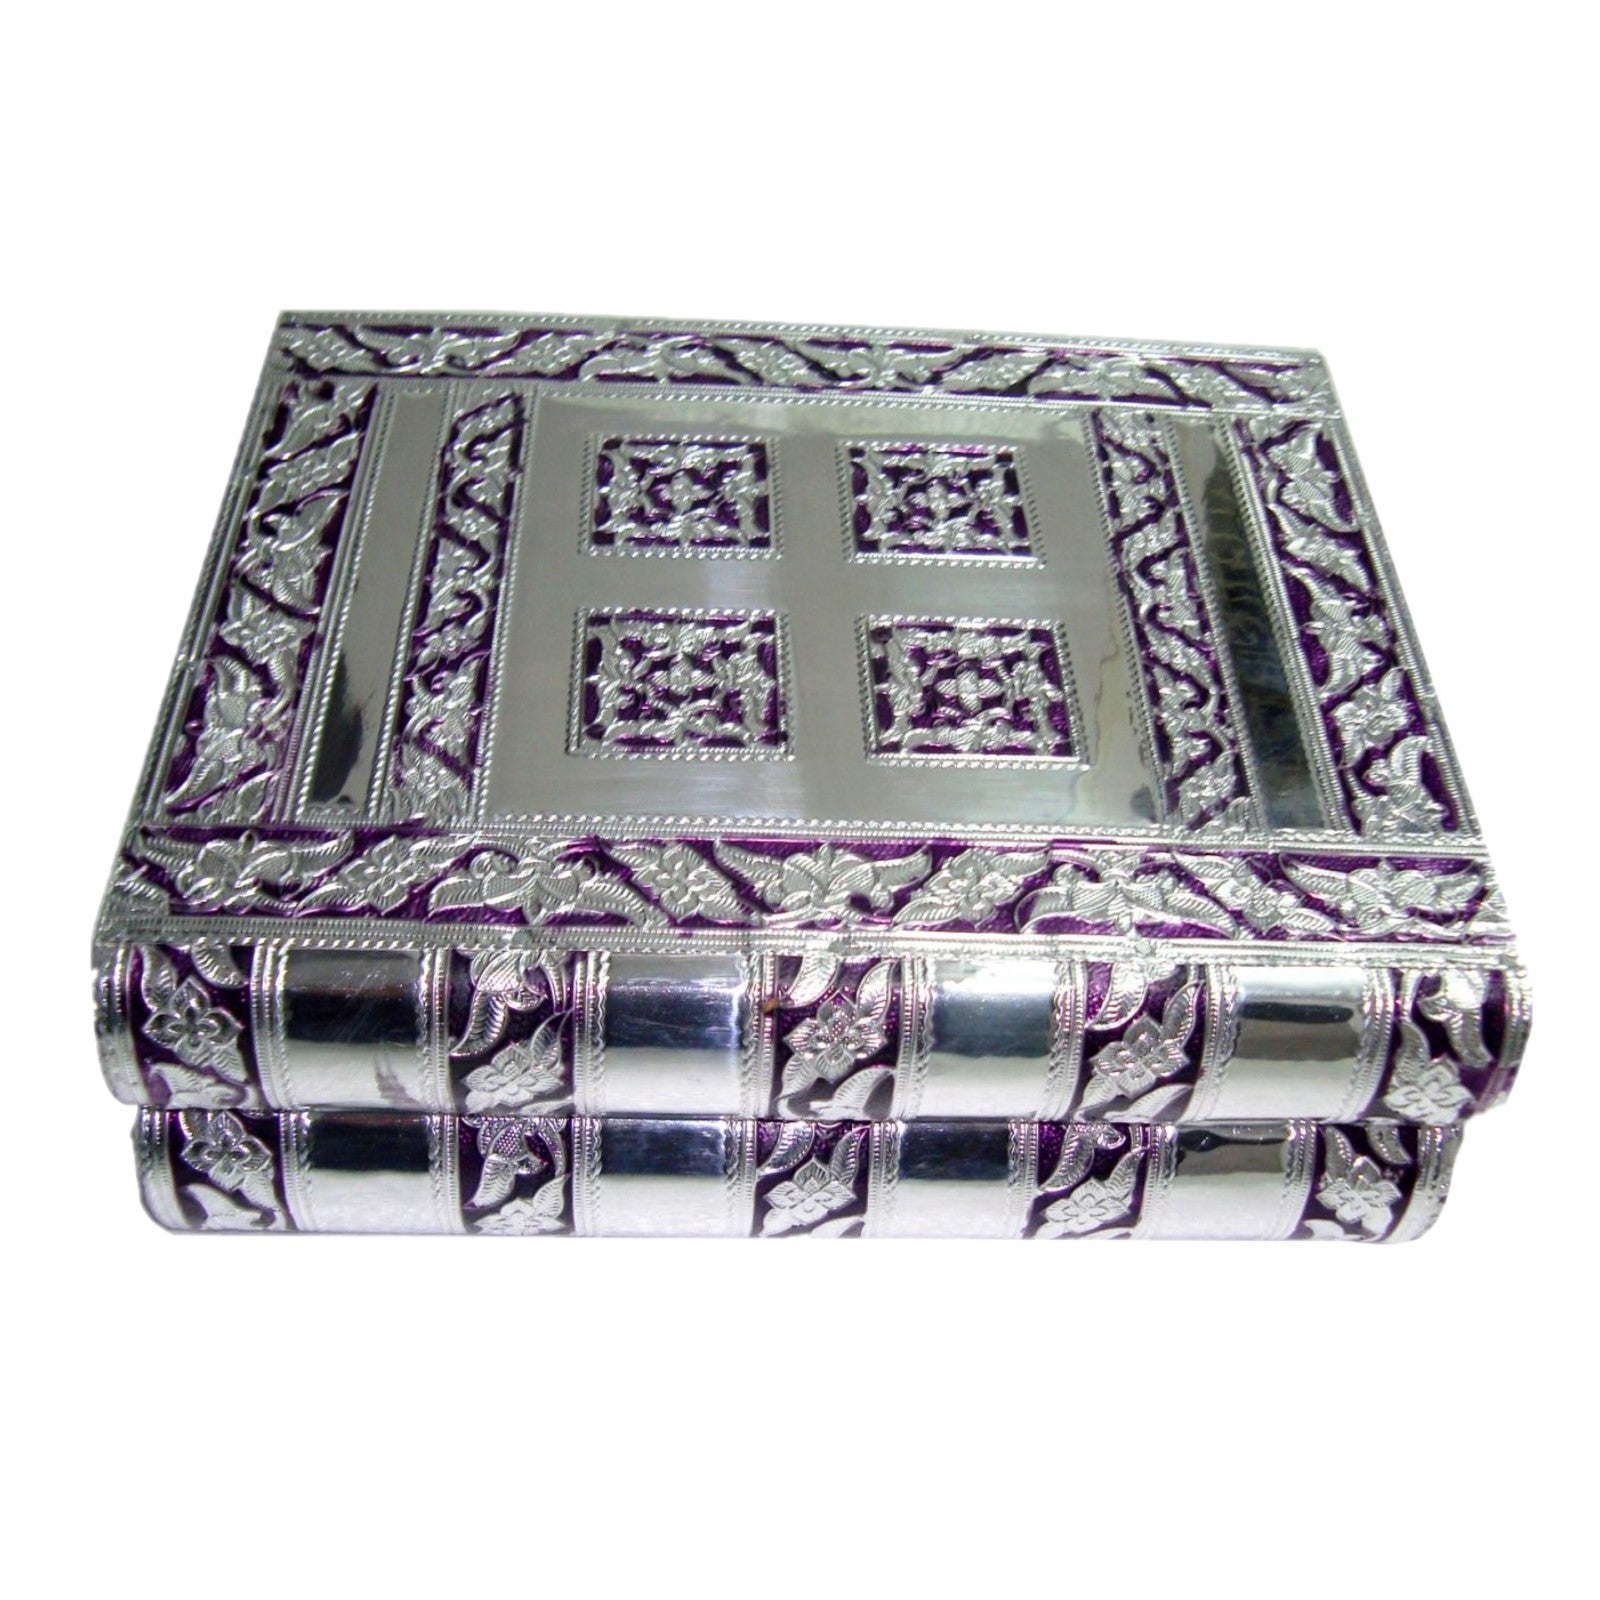 Purple and Silver Jewellery Box - Rivendell Shop NZ